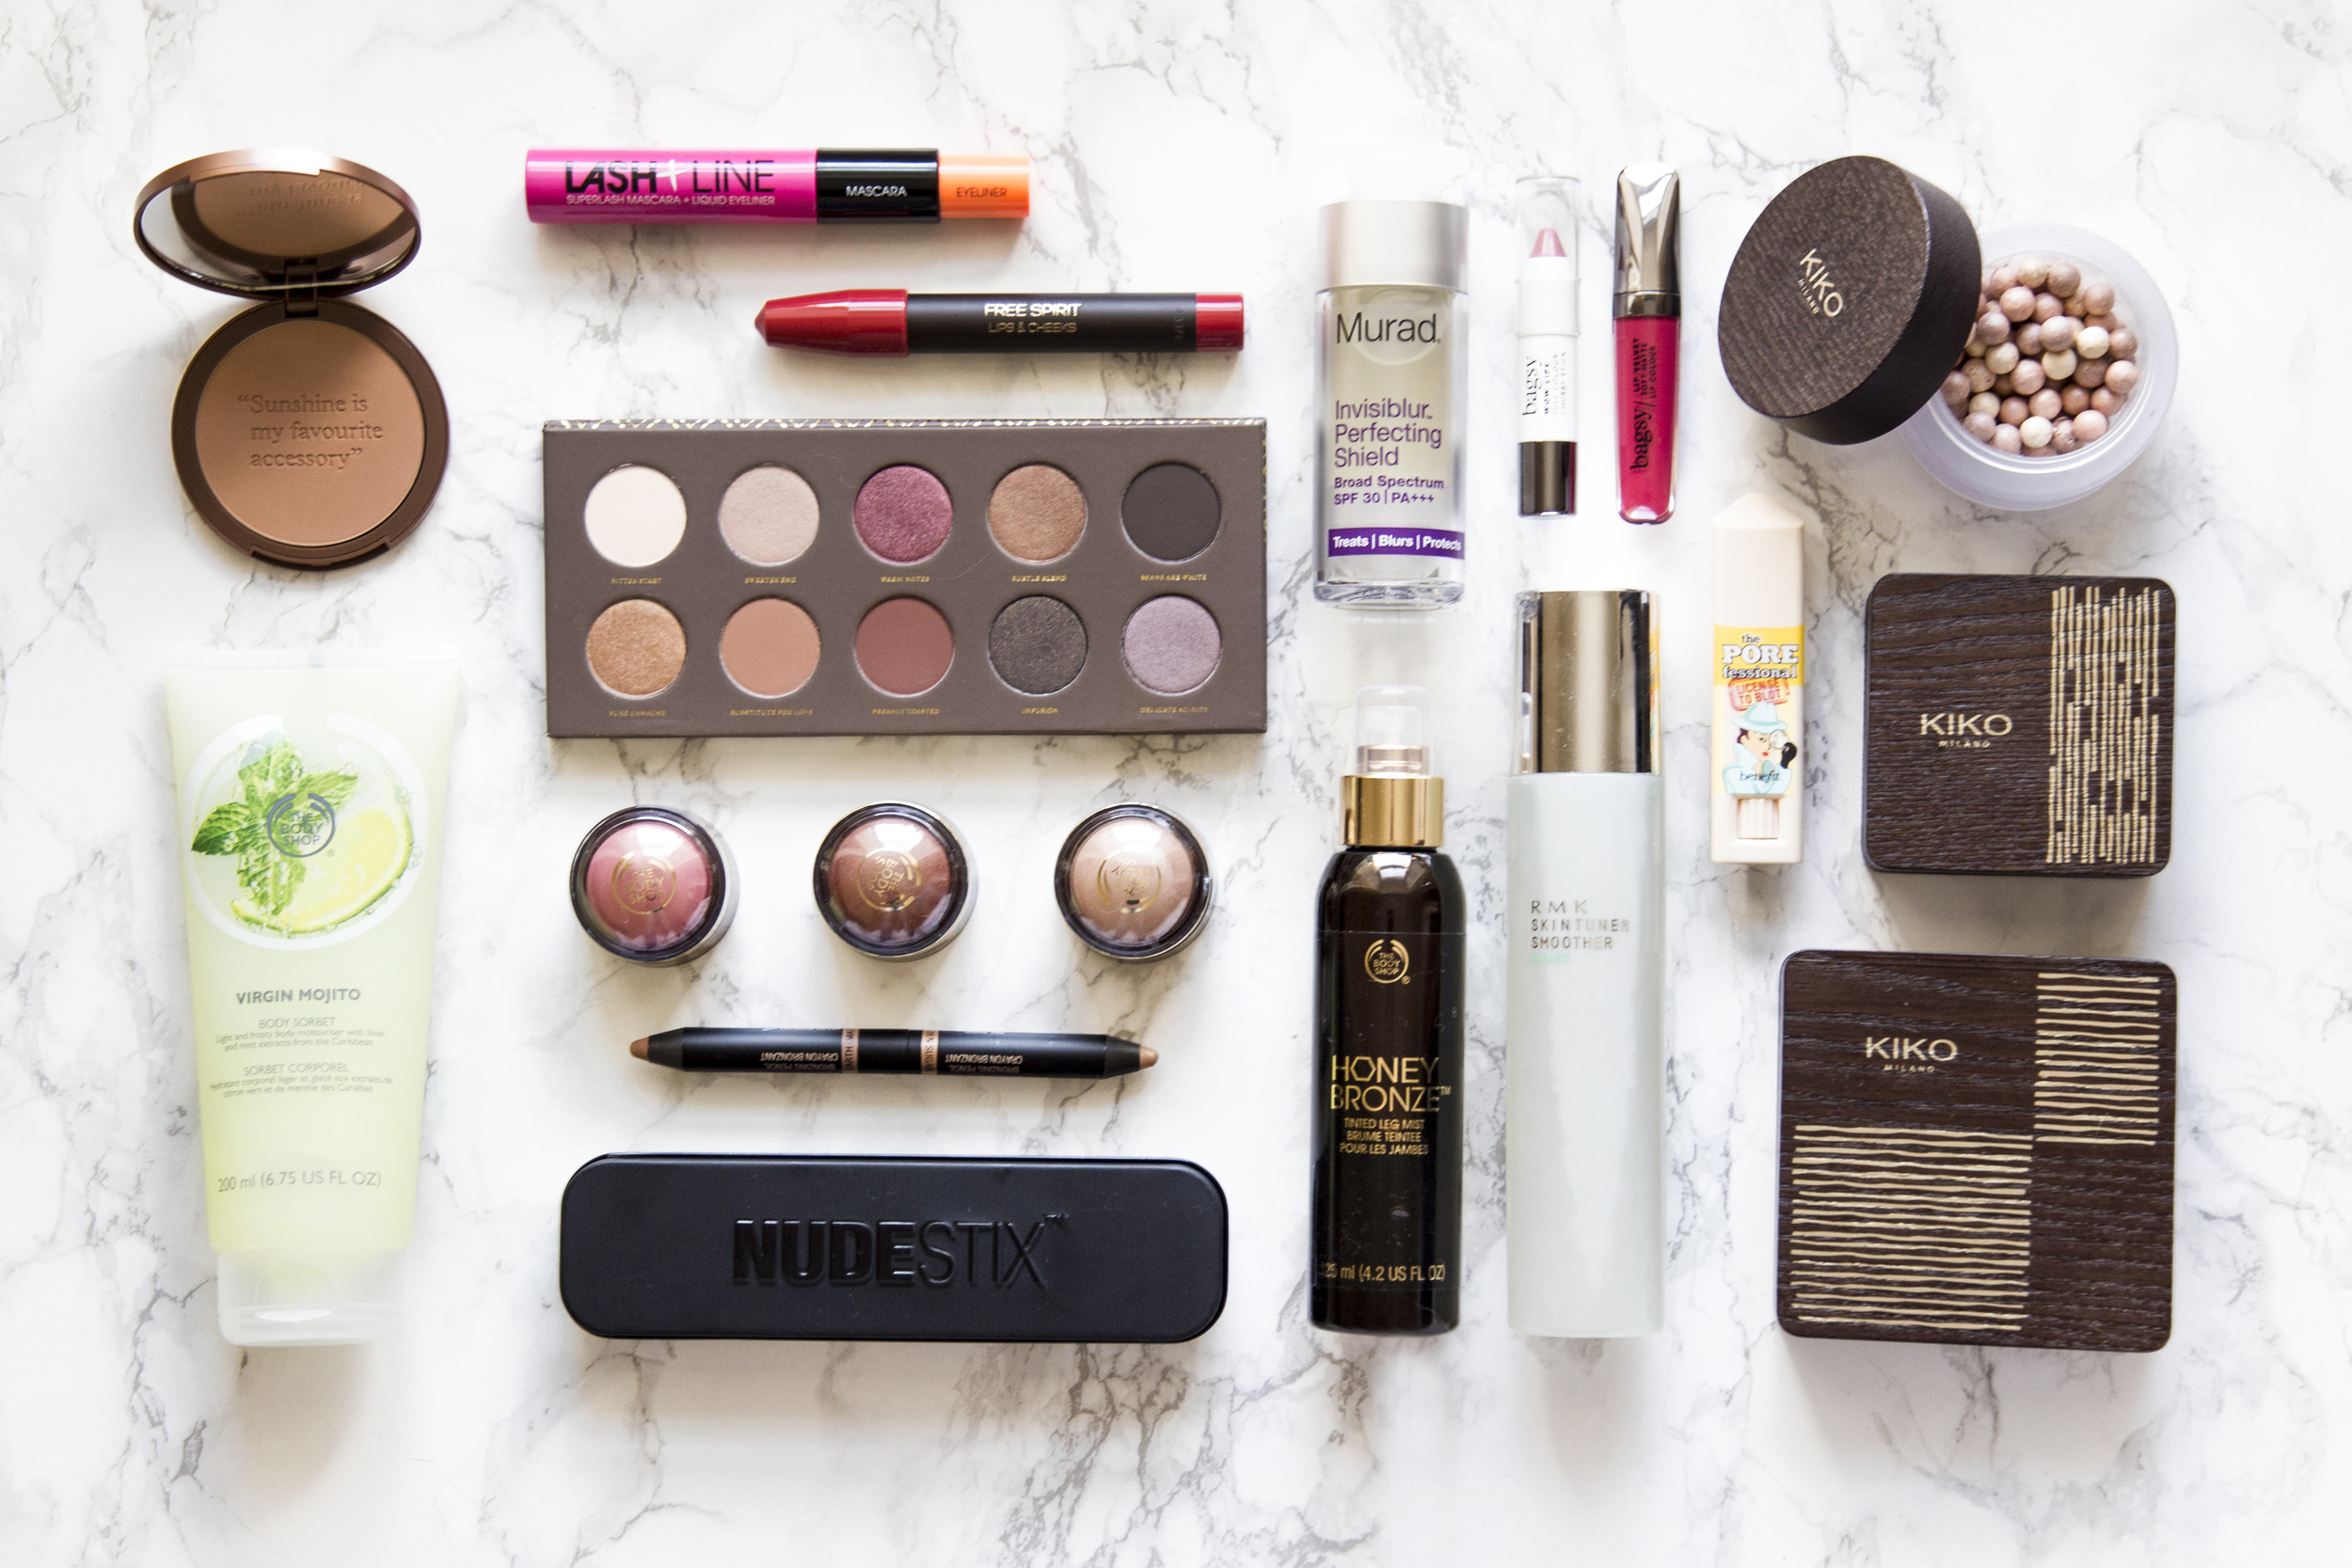 New beauty launches for June 2015